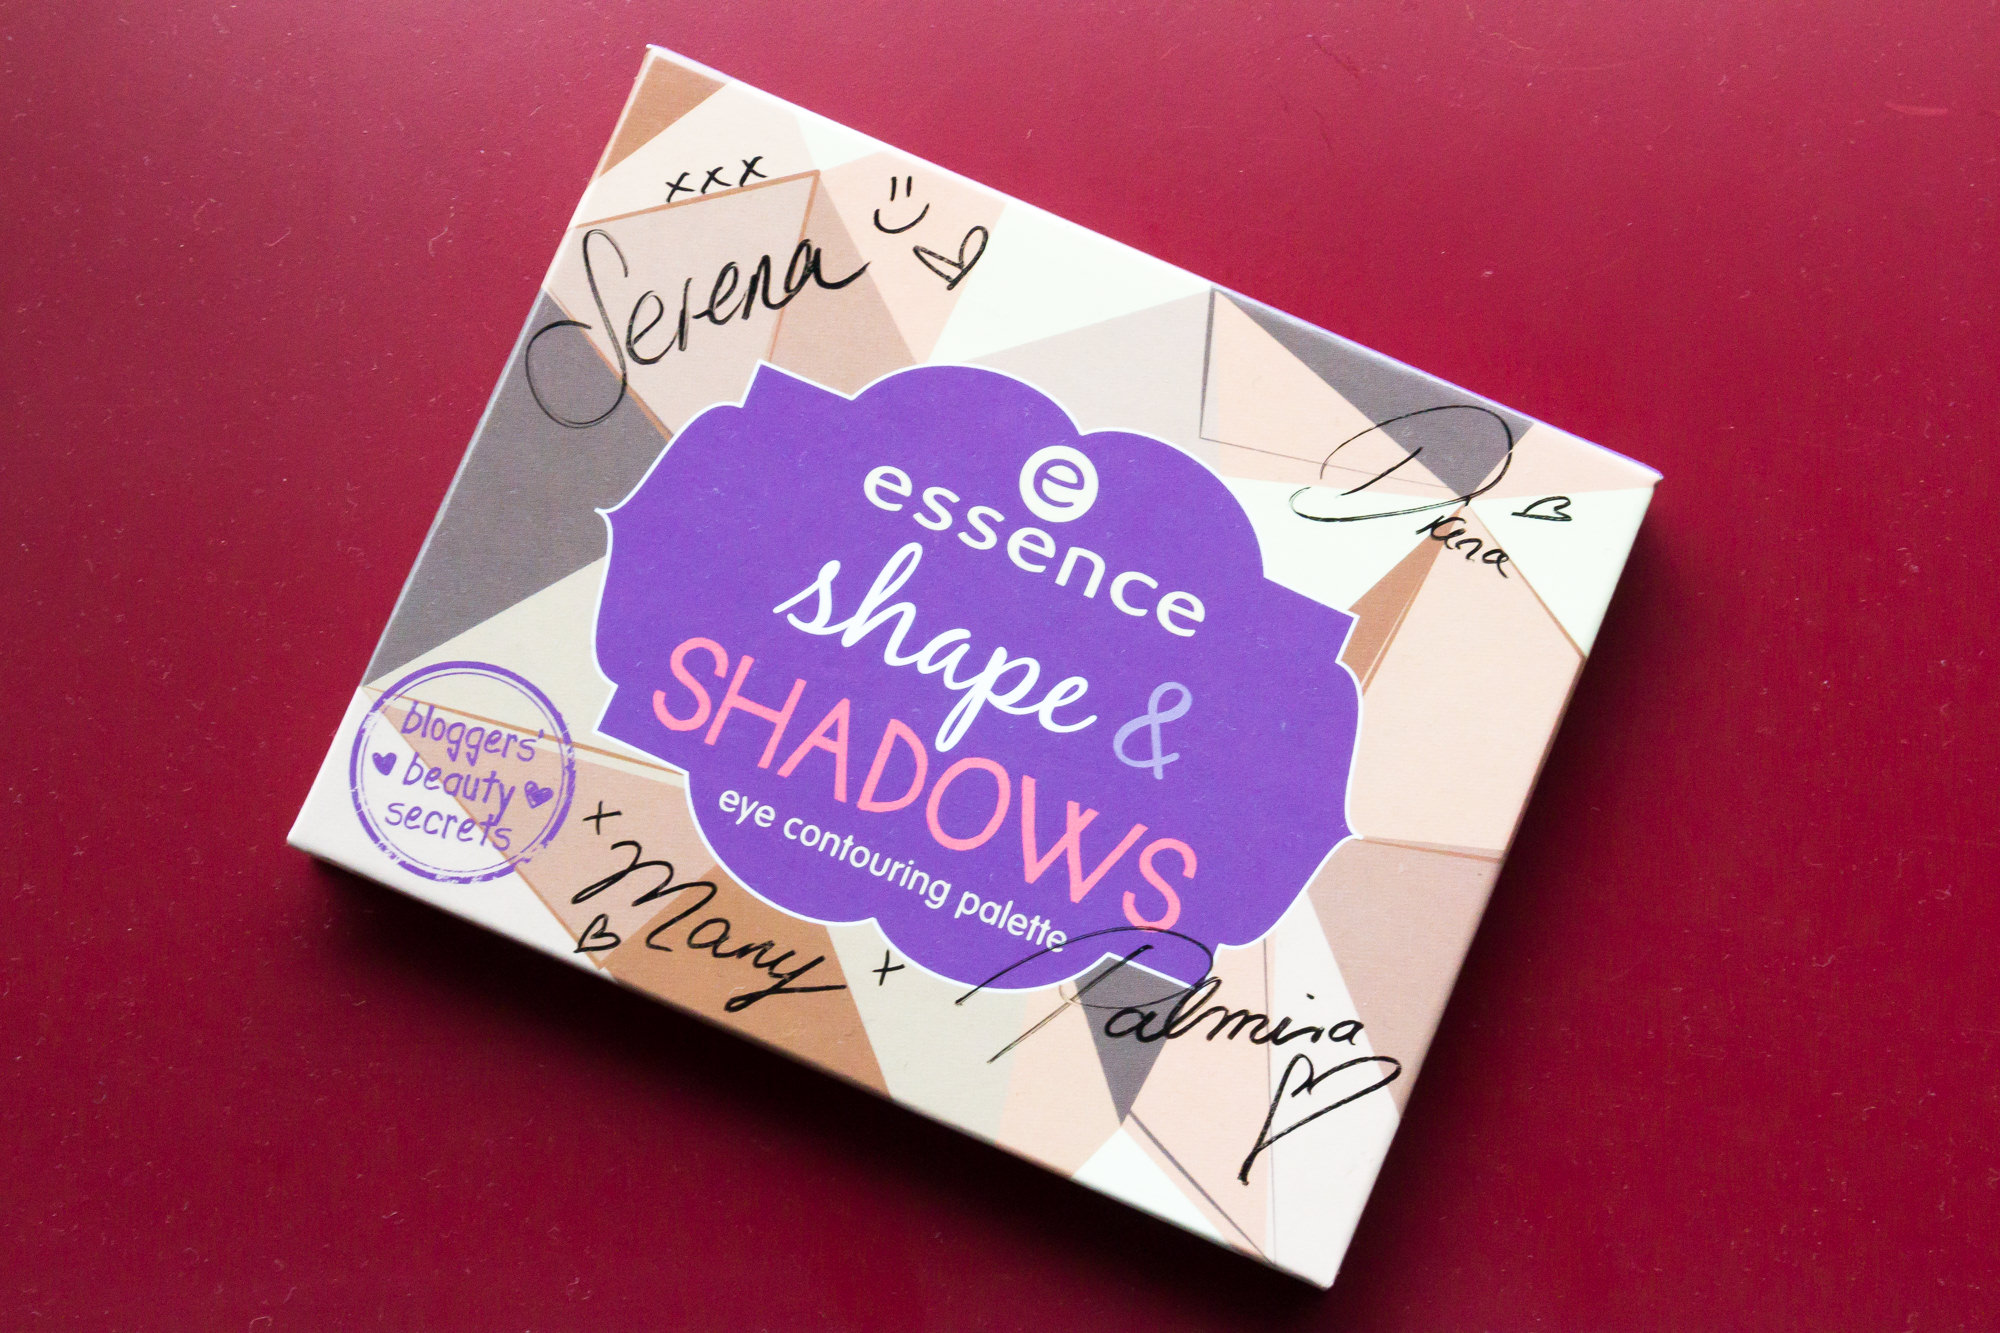 Strikeapose essence cosmetics shape & shadows palette